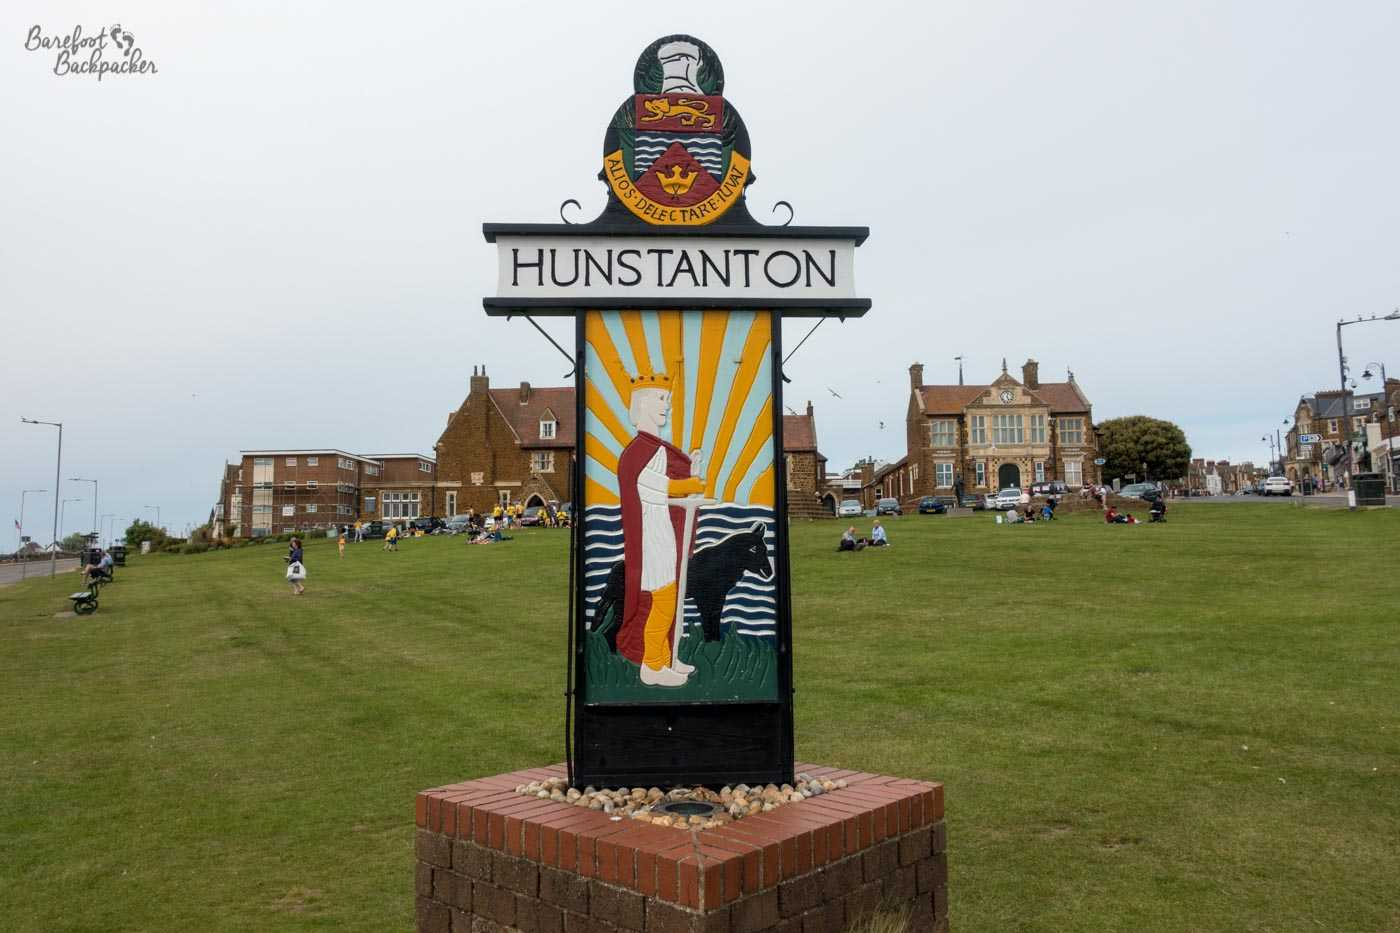 Hunstanton's main 'village green'. The village sign takes centre stage - a regal figure standing with a long sword in the ground, in front of what looks like a horse, with a representation of the sea in the background. As for the green itself, it's on a slope. There are some old buildings in the background, possibly a pub, and many indistinct people sitting, standing, playing sports on the grass.